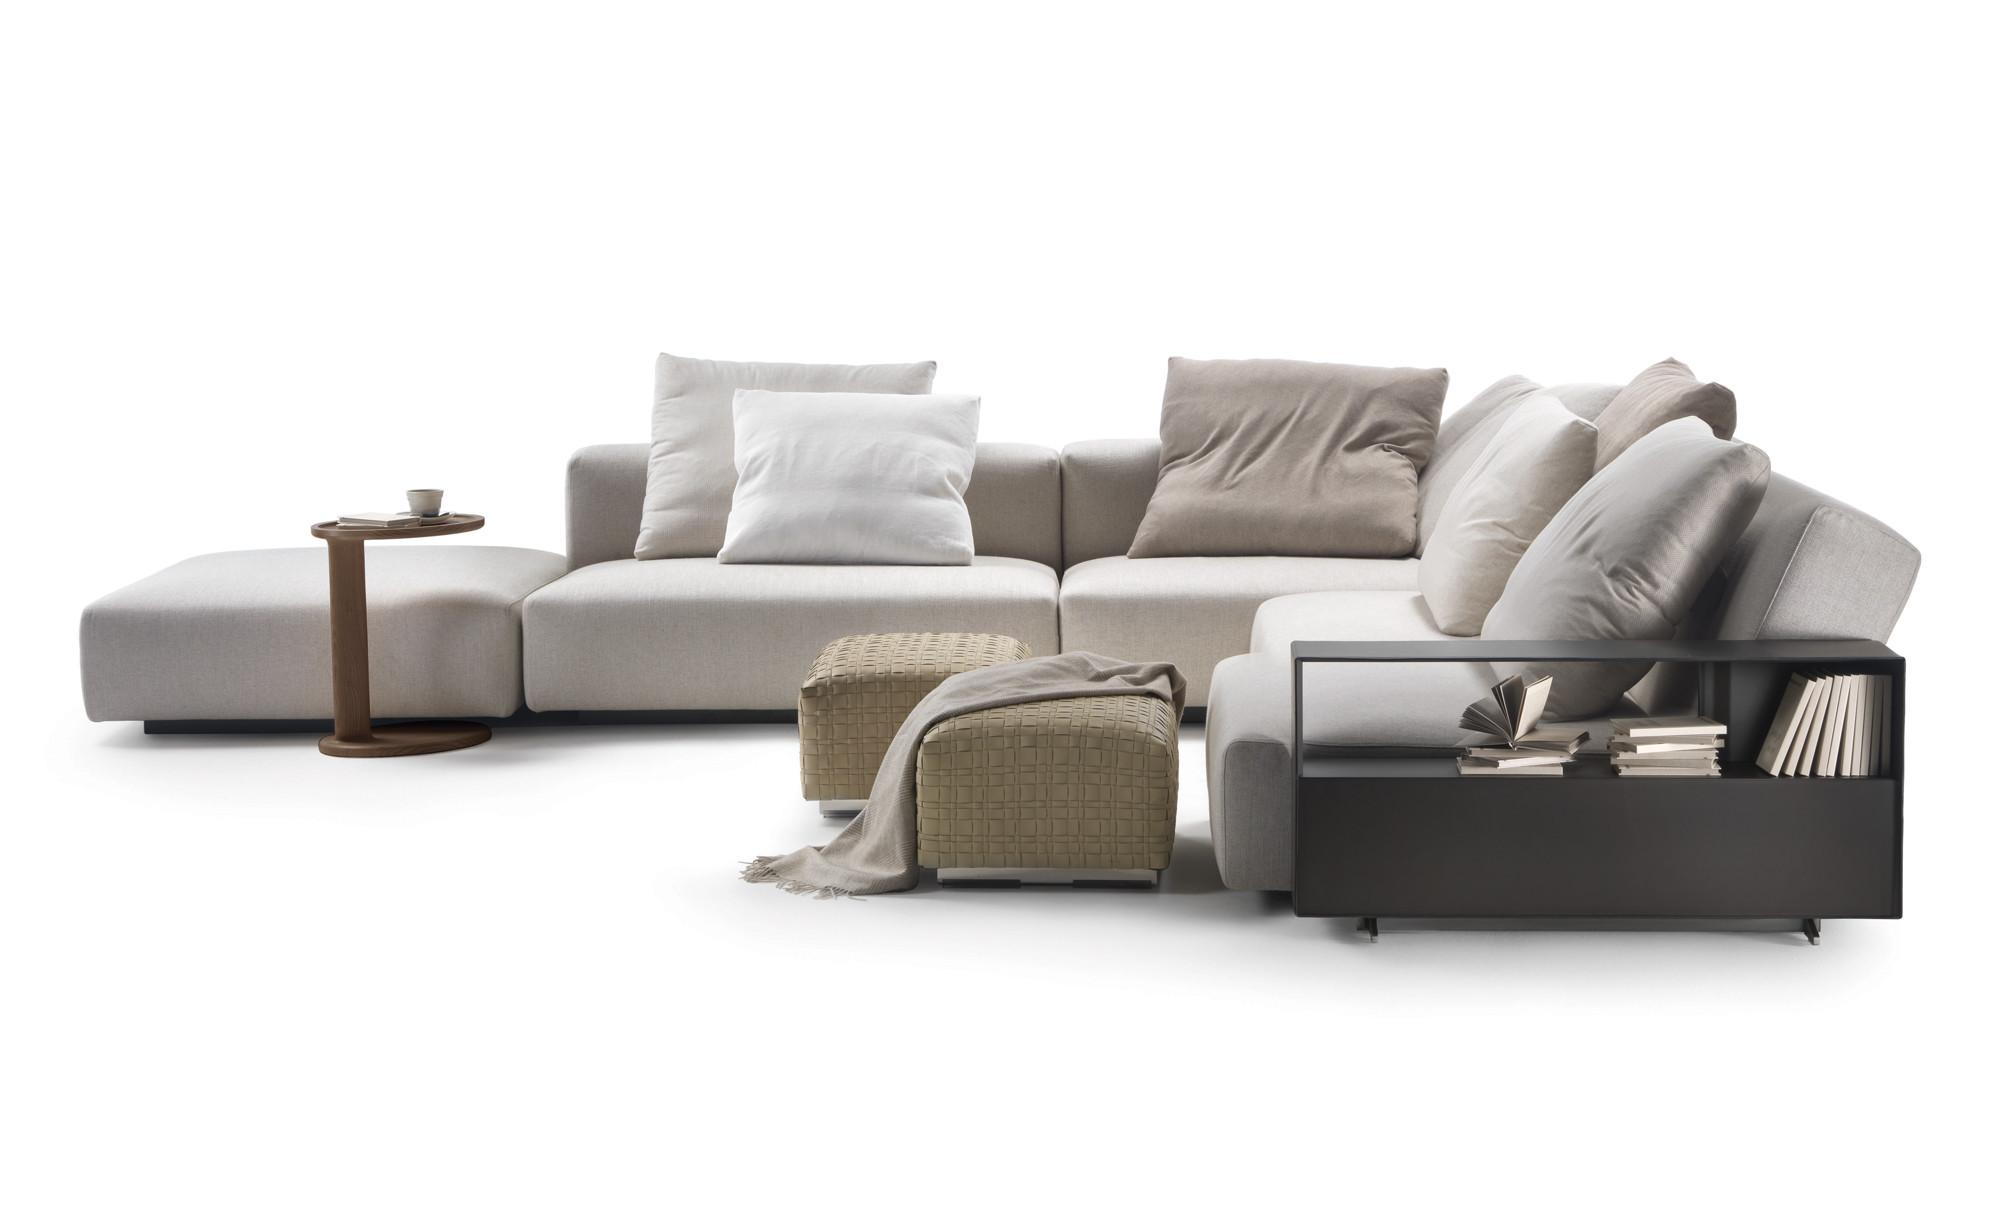 Lario Modular Sofa Fanuli Furniture